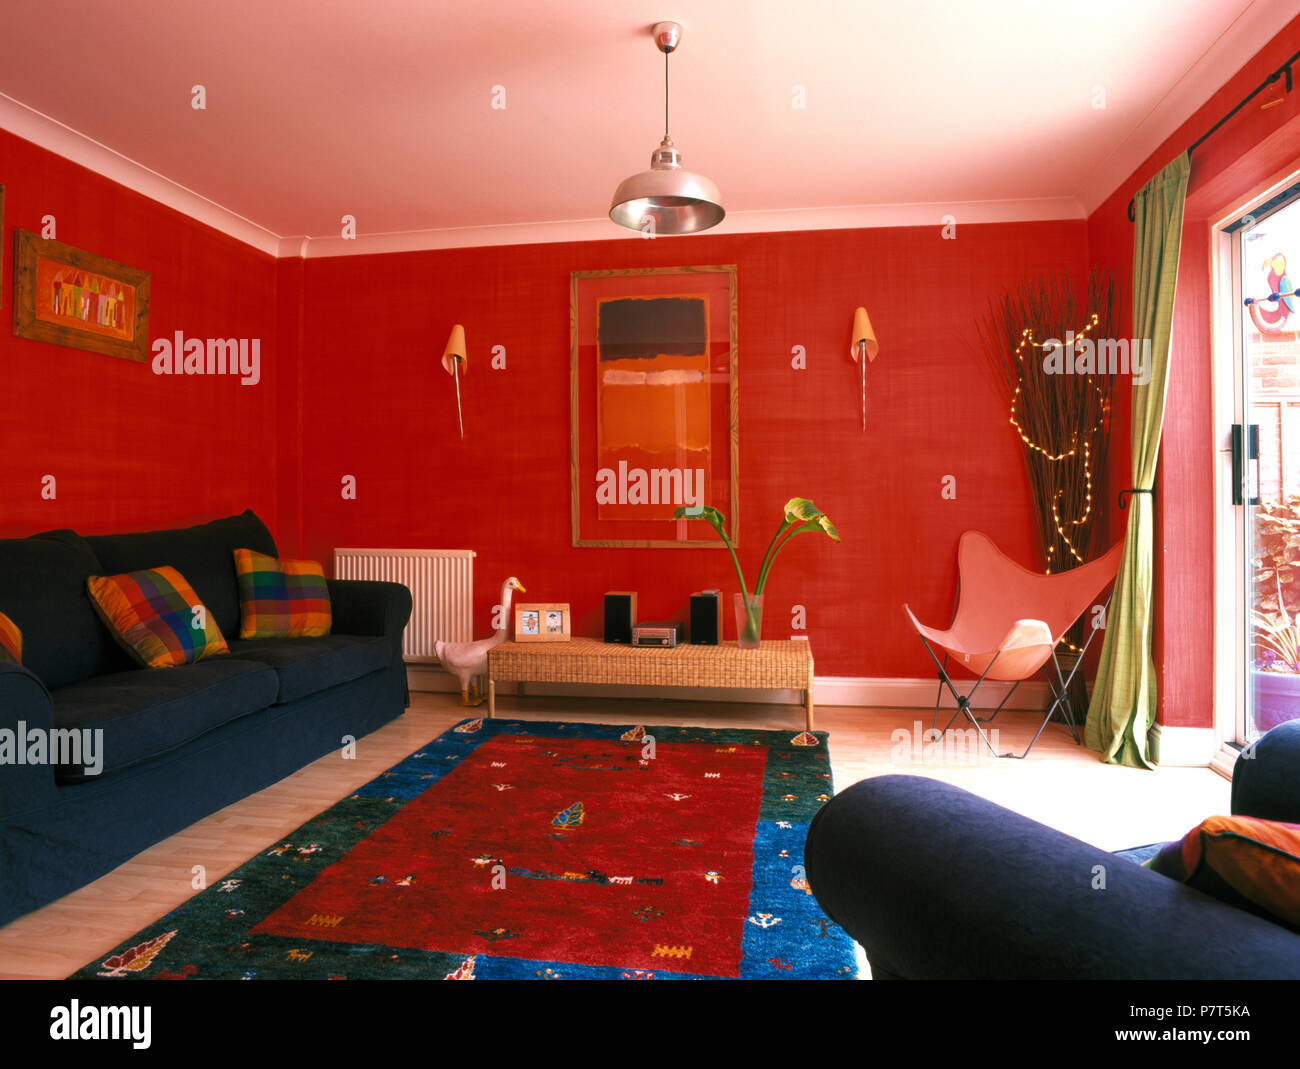 Red Blue Rug And Blue Sofa In Bright Red Nineties Living Room Stock